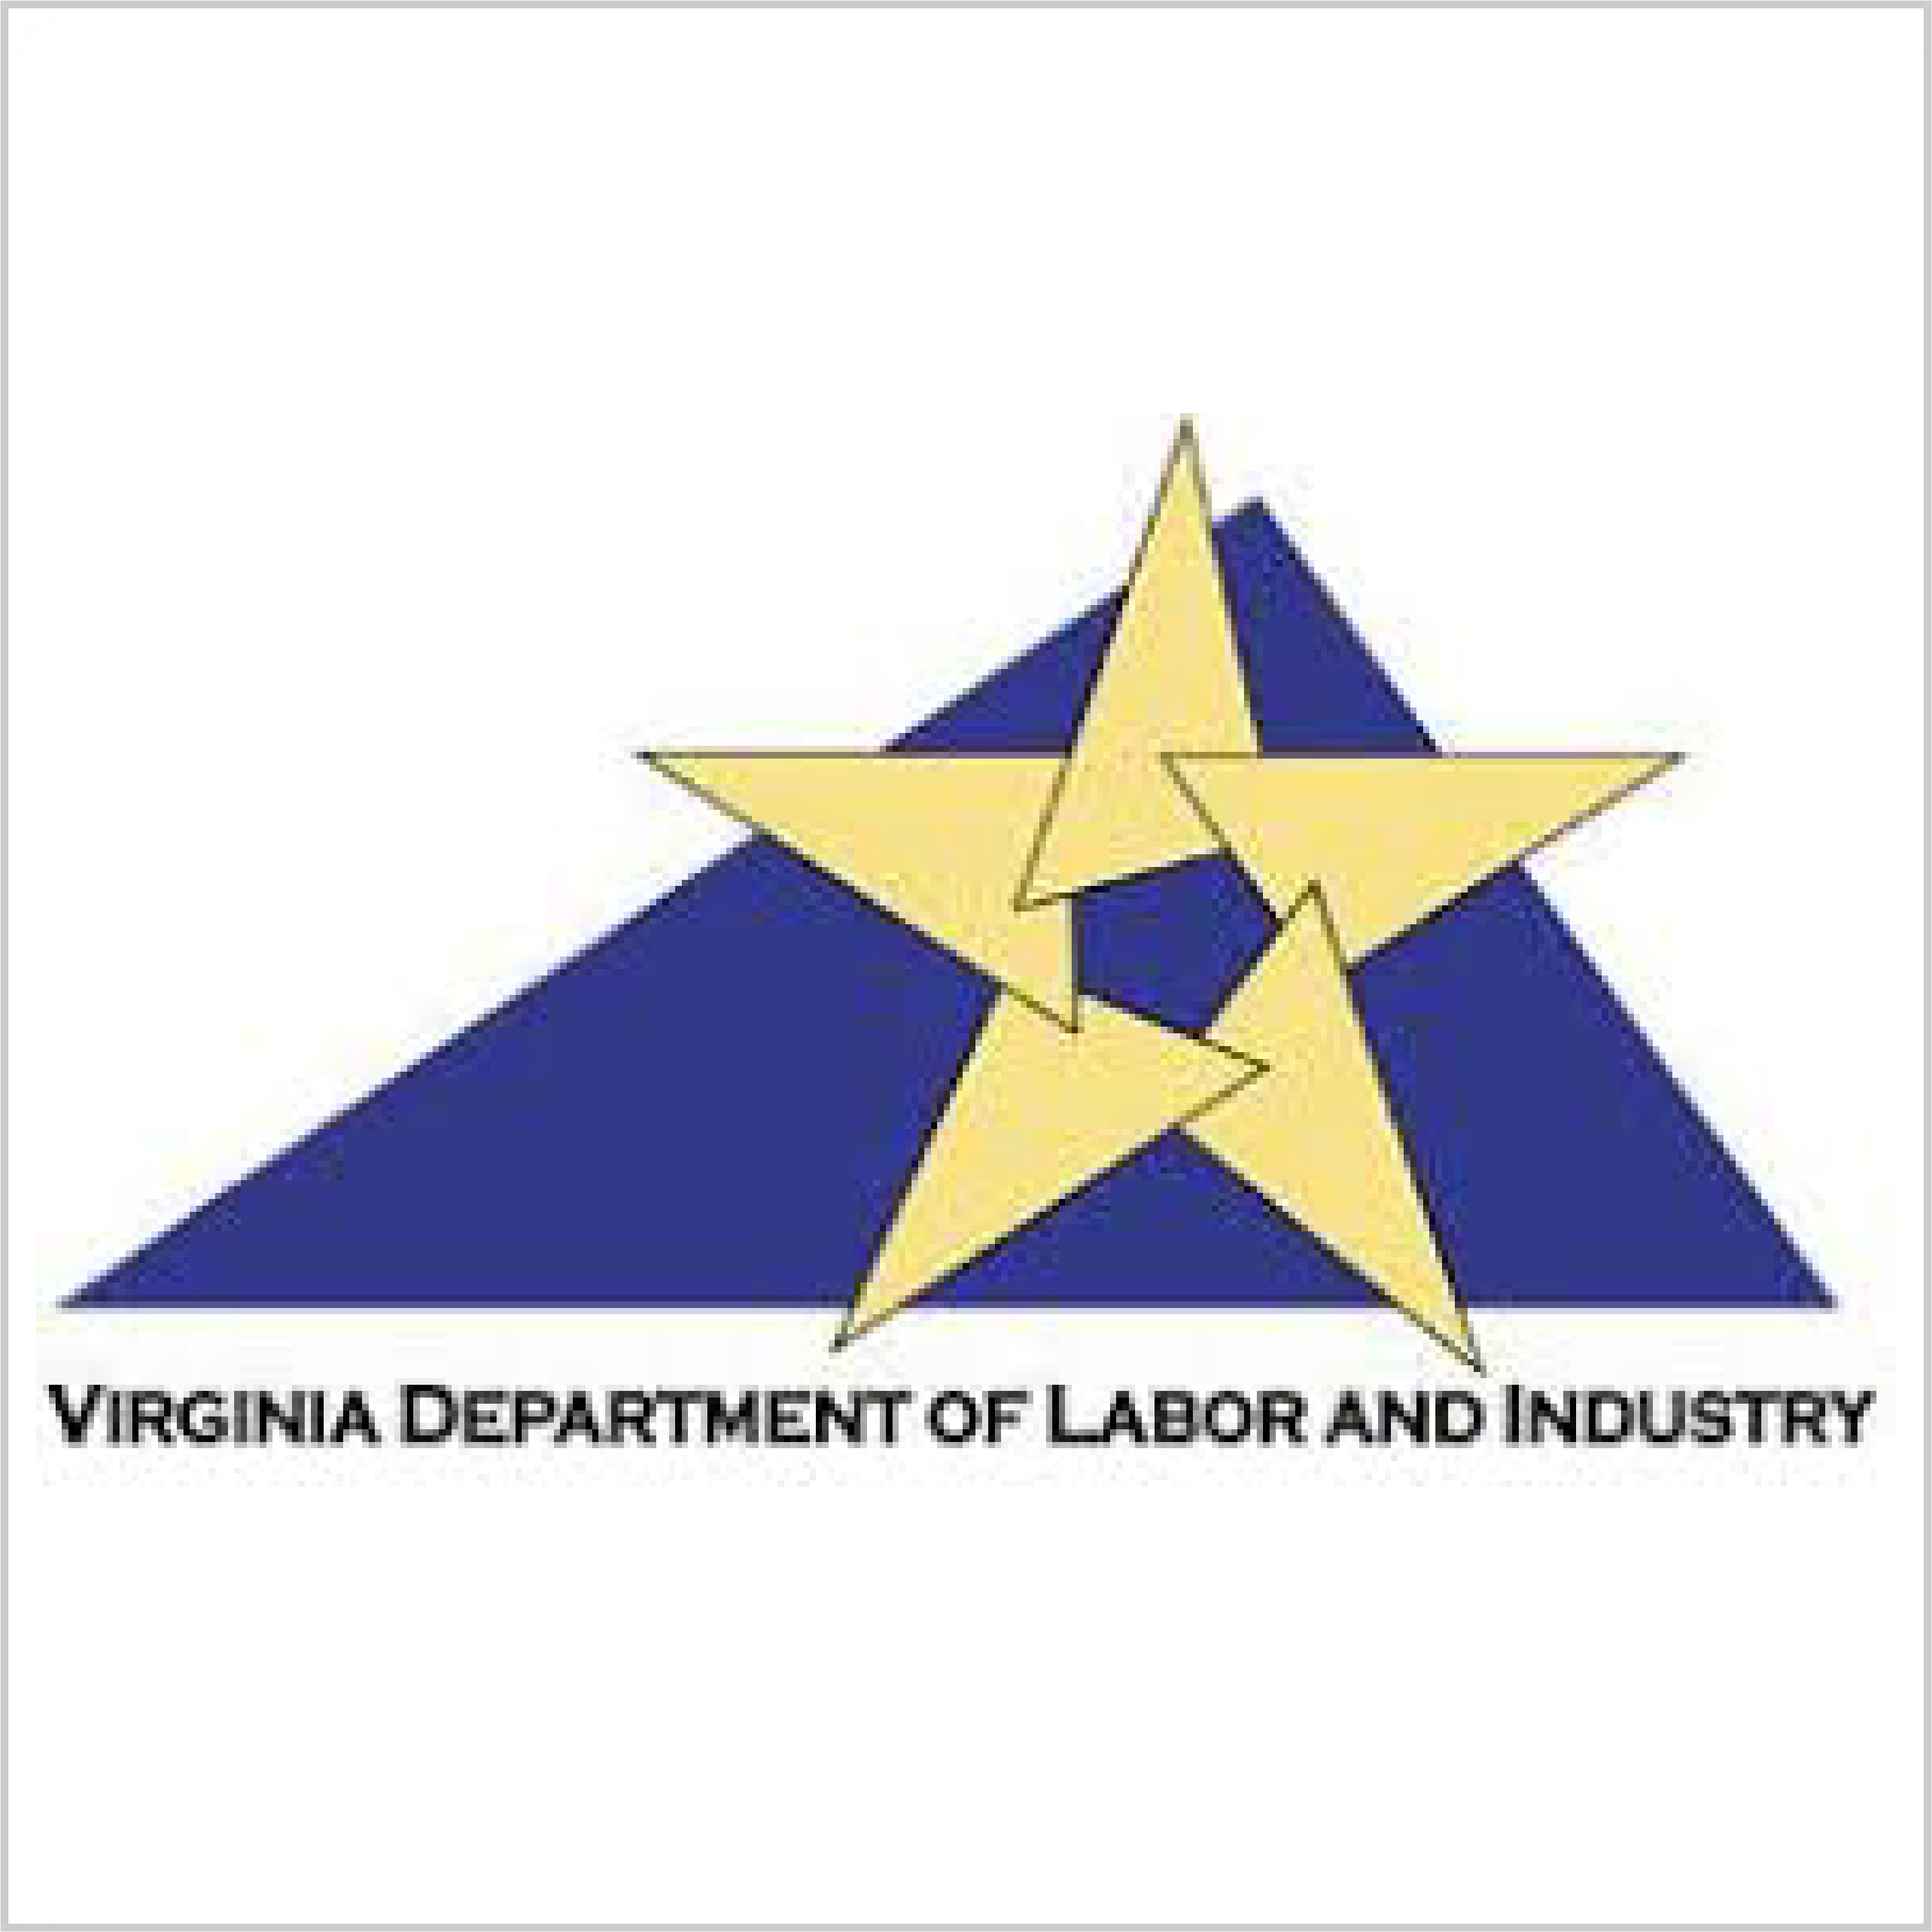 Department of Labor Industry